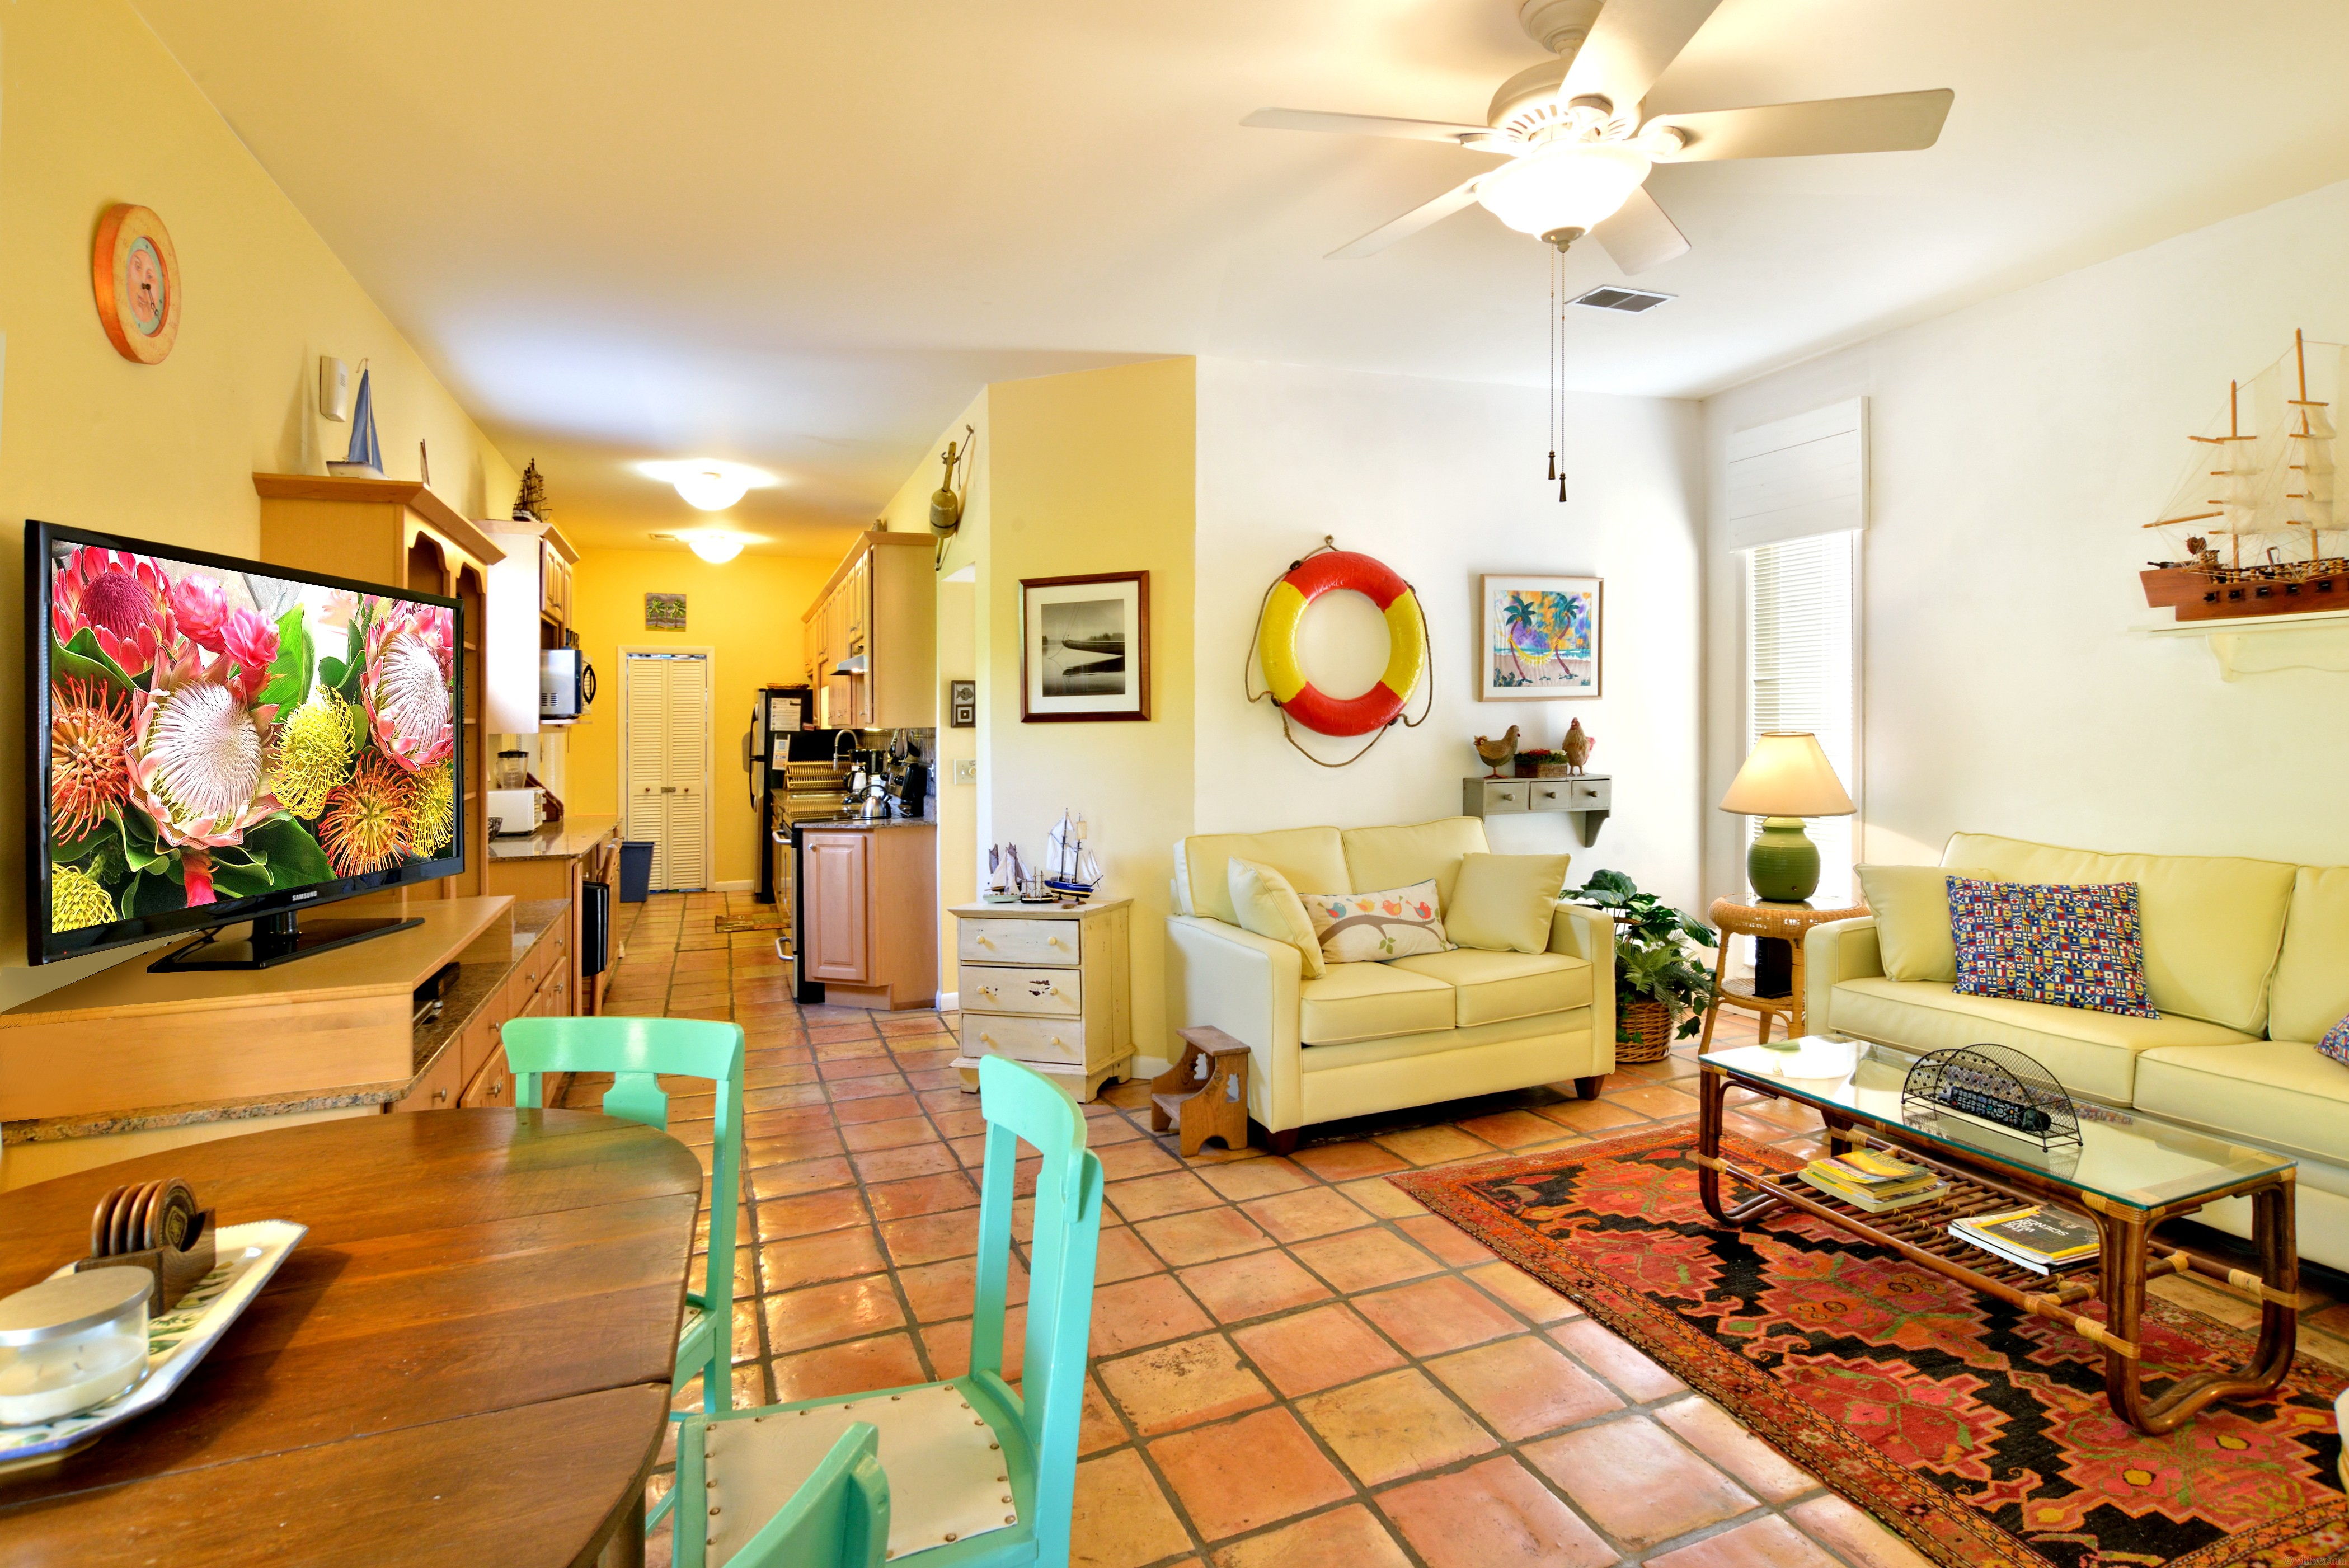 large home cottage old cottages whitmarsh in private lane vacation key town rental florida west spa a